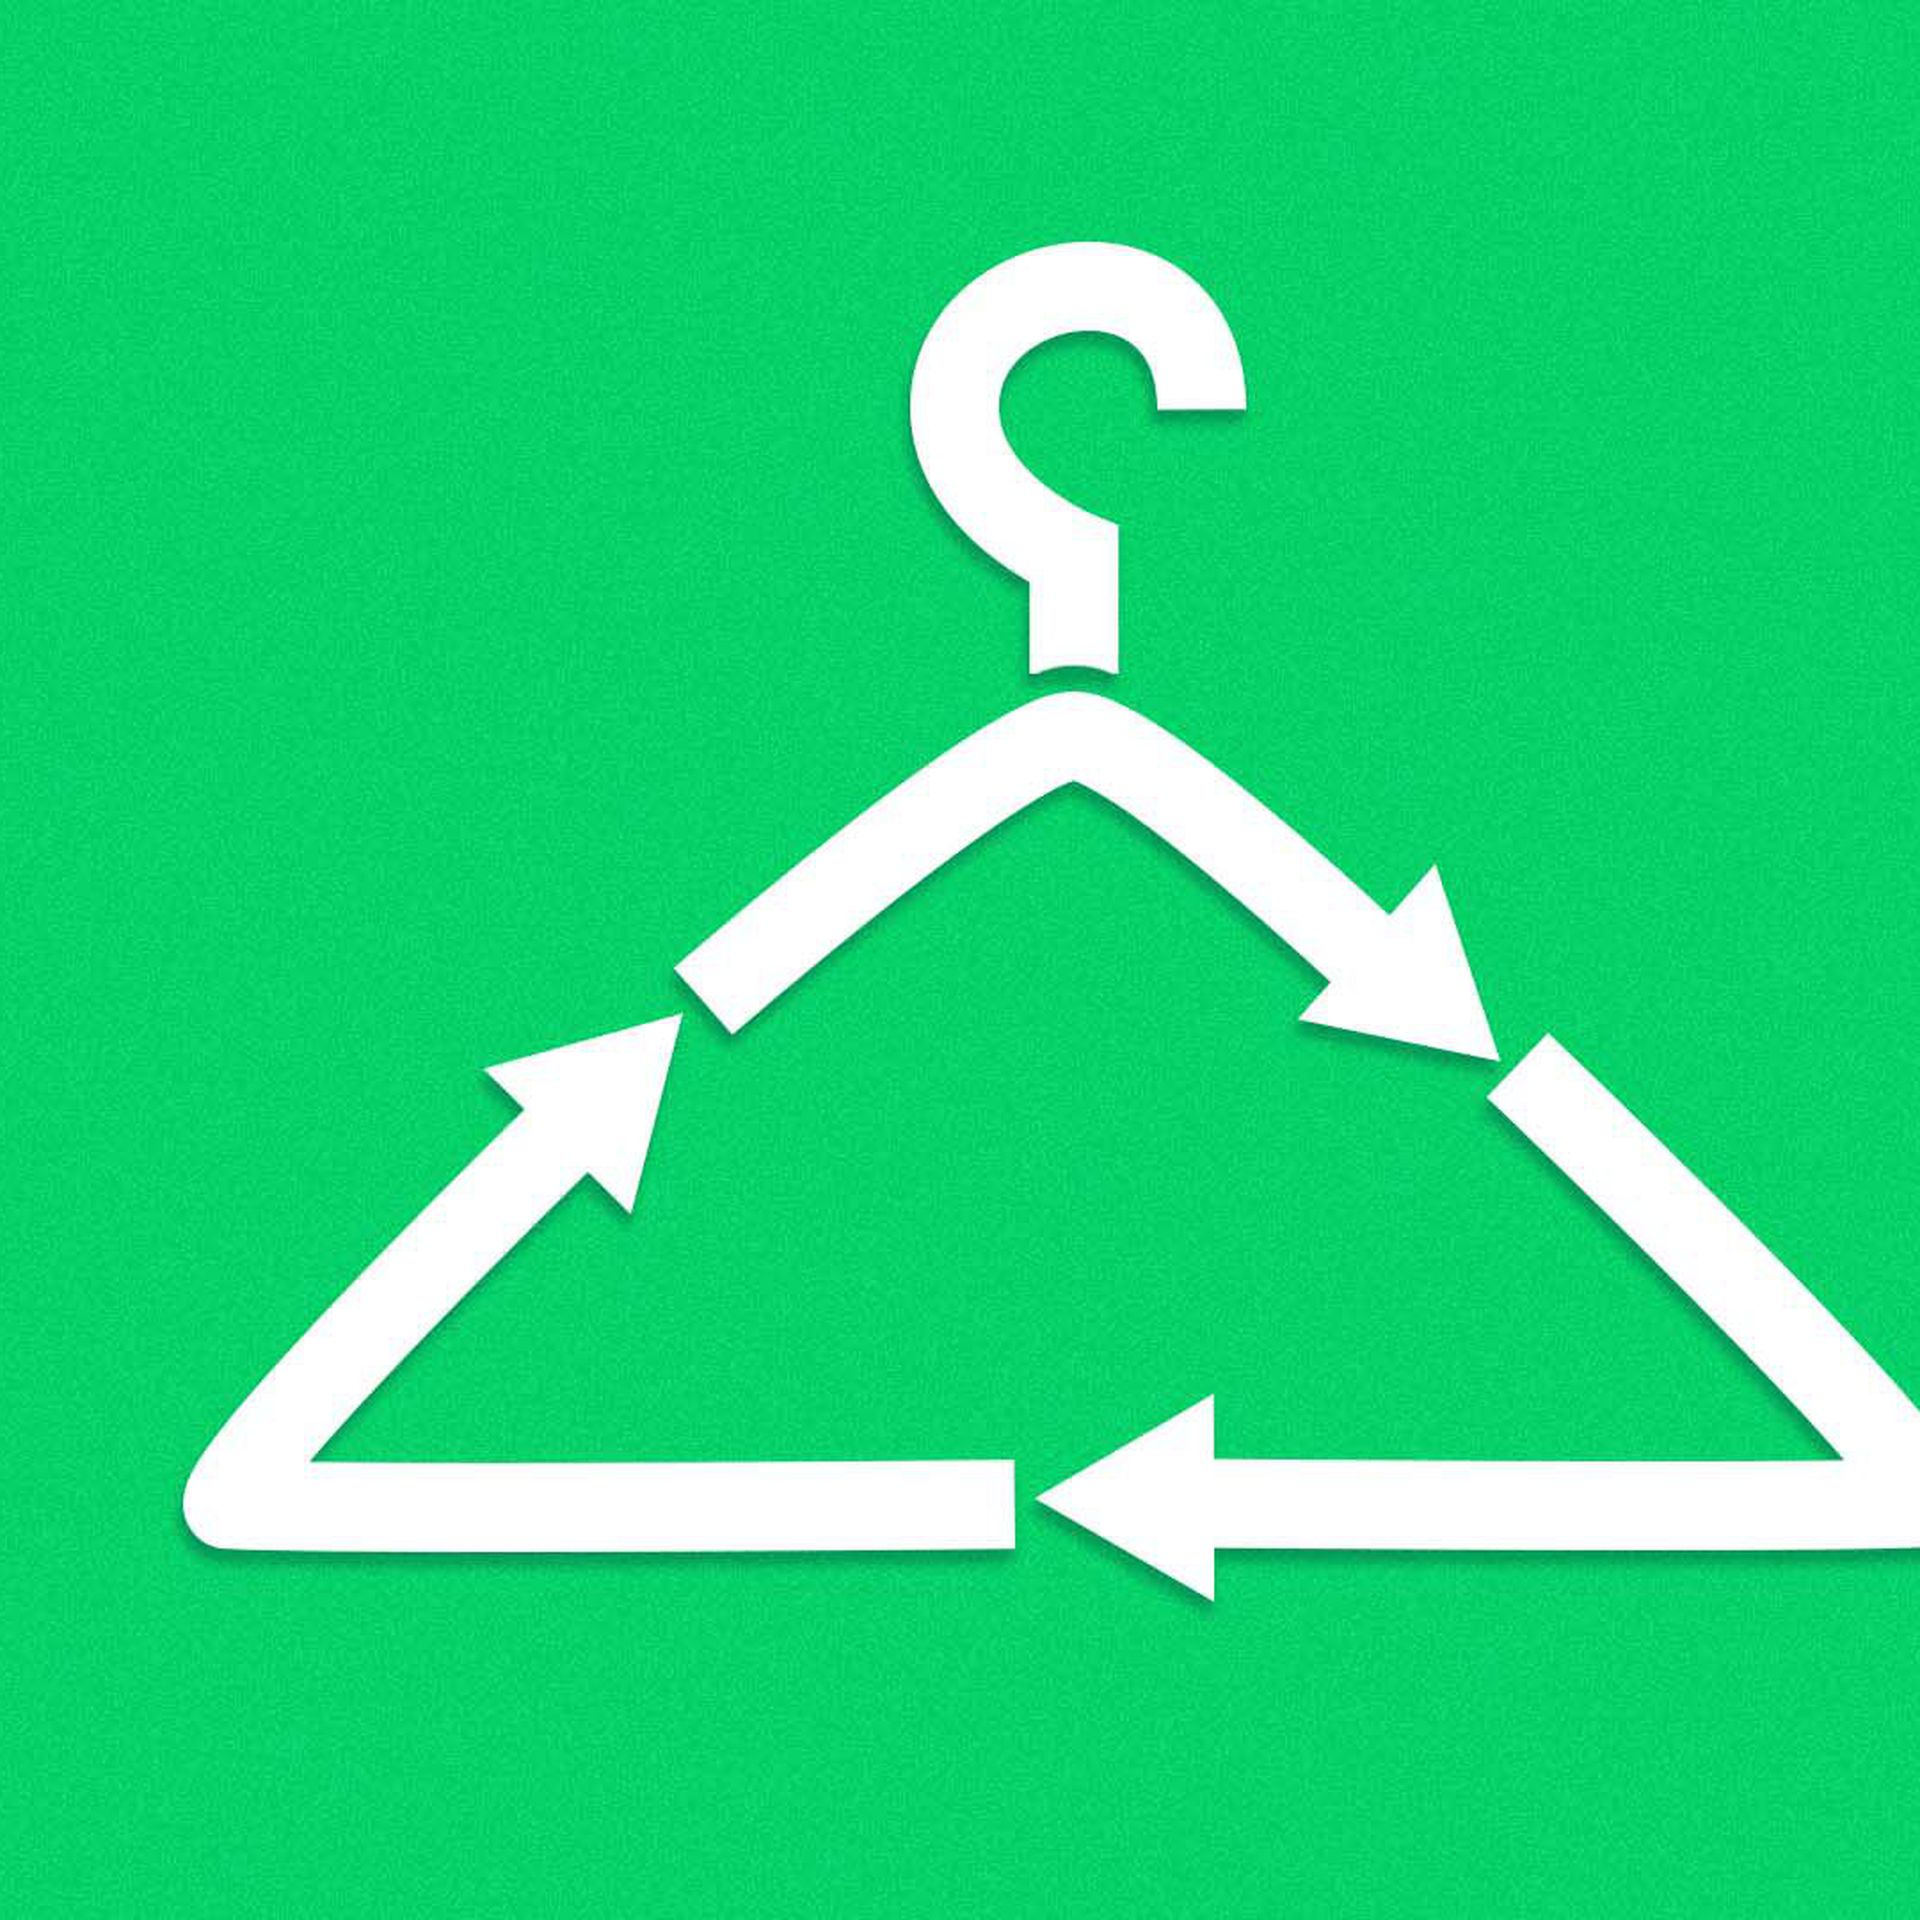 An illustration of a hanger shaped like a recycling sign.